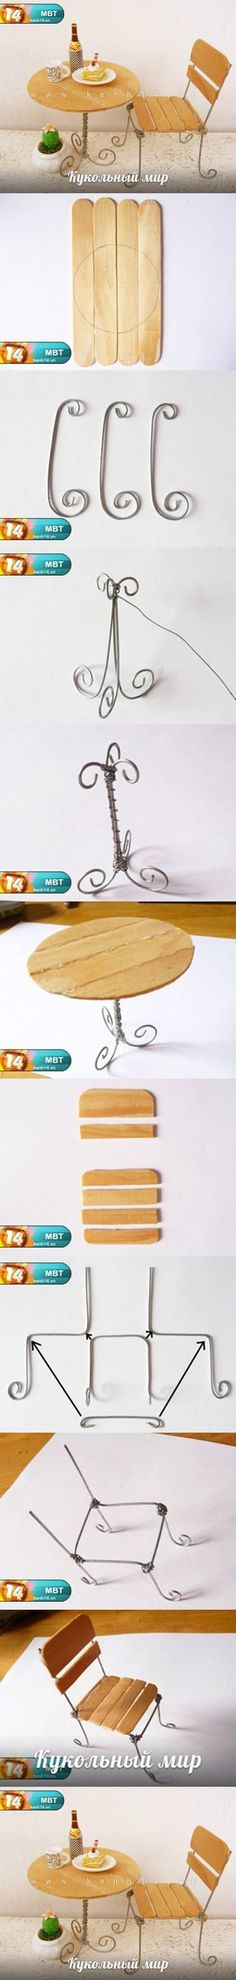 DIY Popsicle Stick Desk and Chair diy how to tutorial